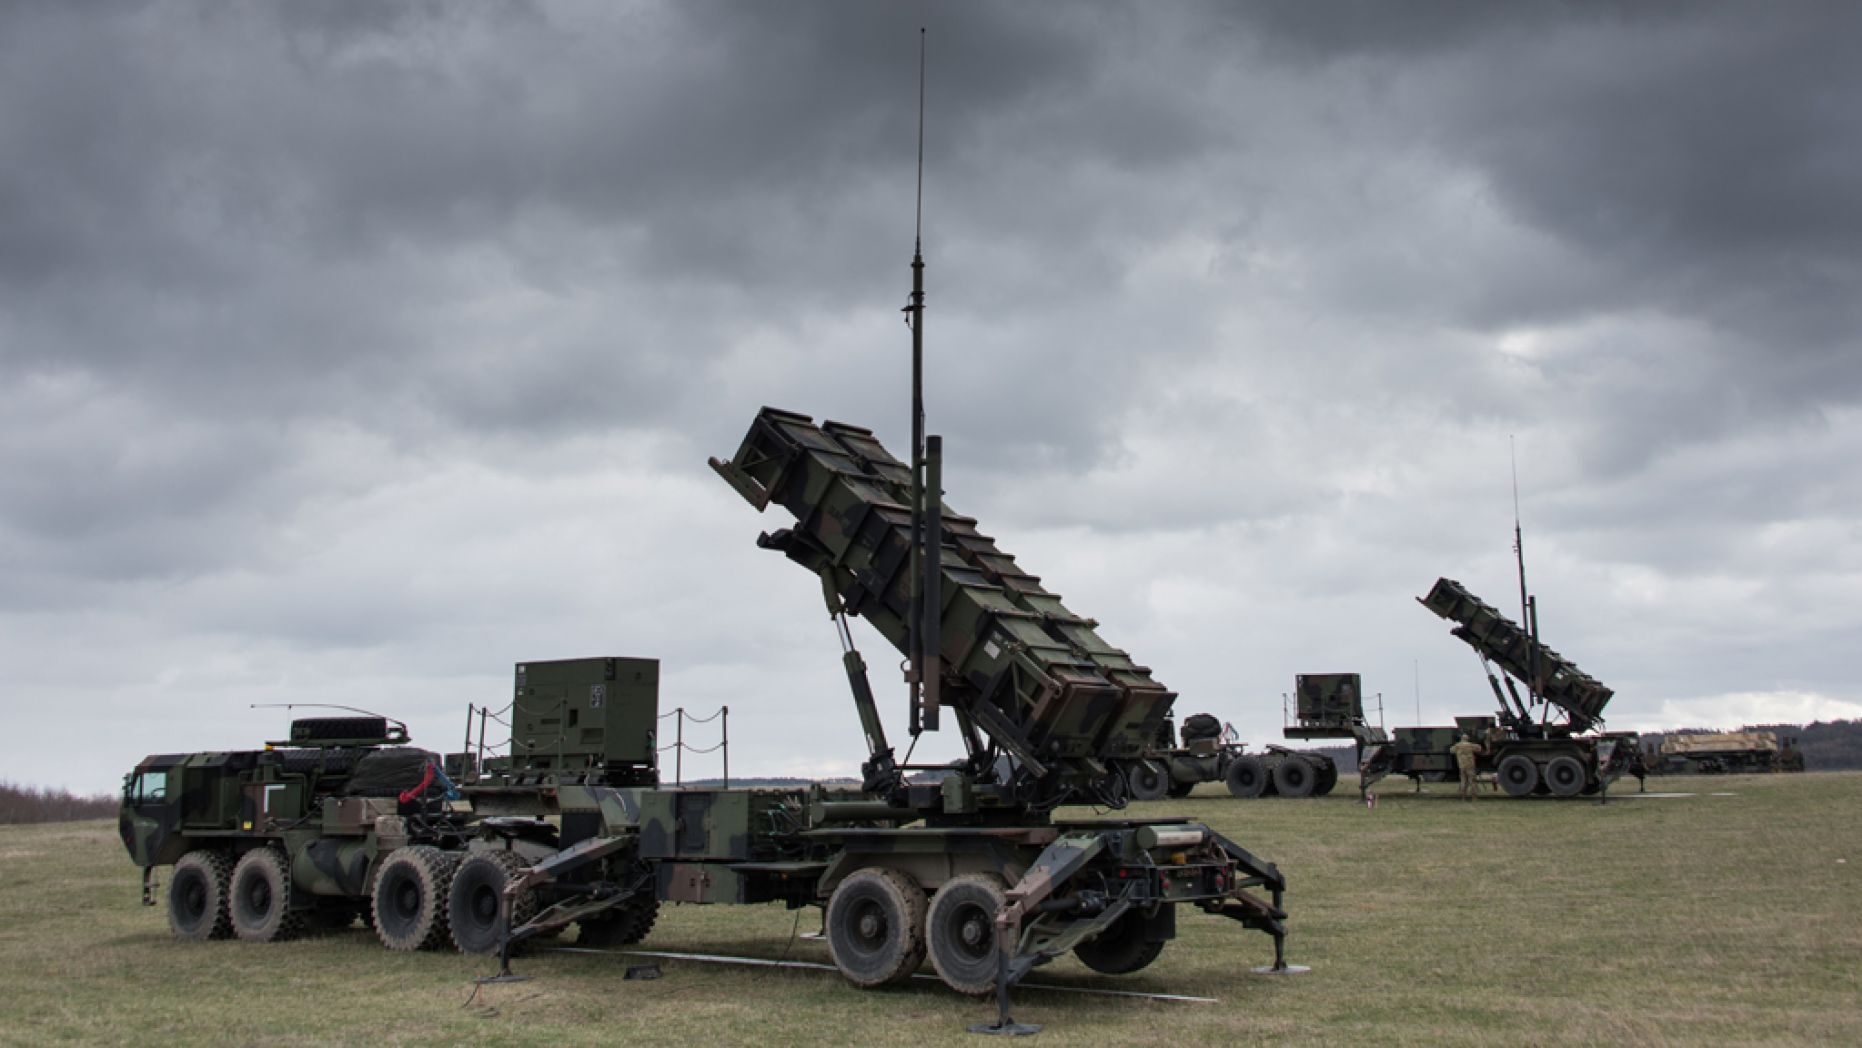 U.S. Soldiers with 5th Battalion, 7th Air Defense Artillery Regiment, 10th Army Air & Missile Defense Command install and check MIM-104